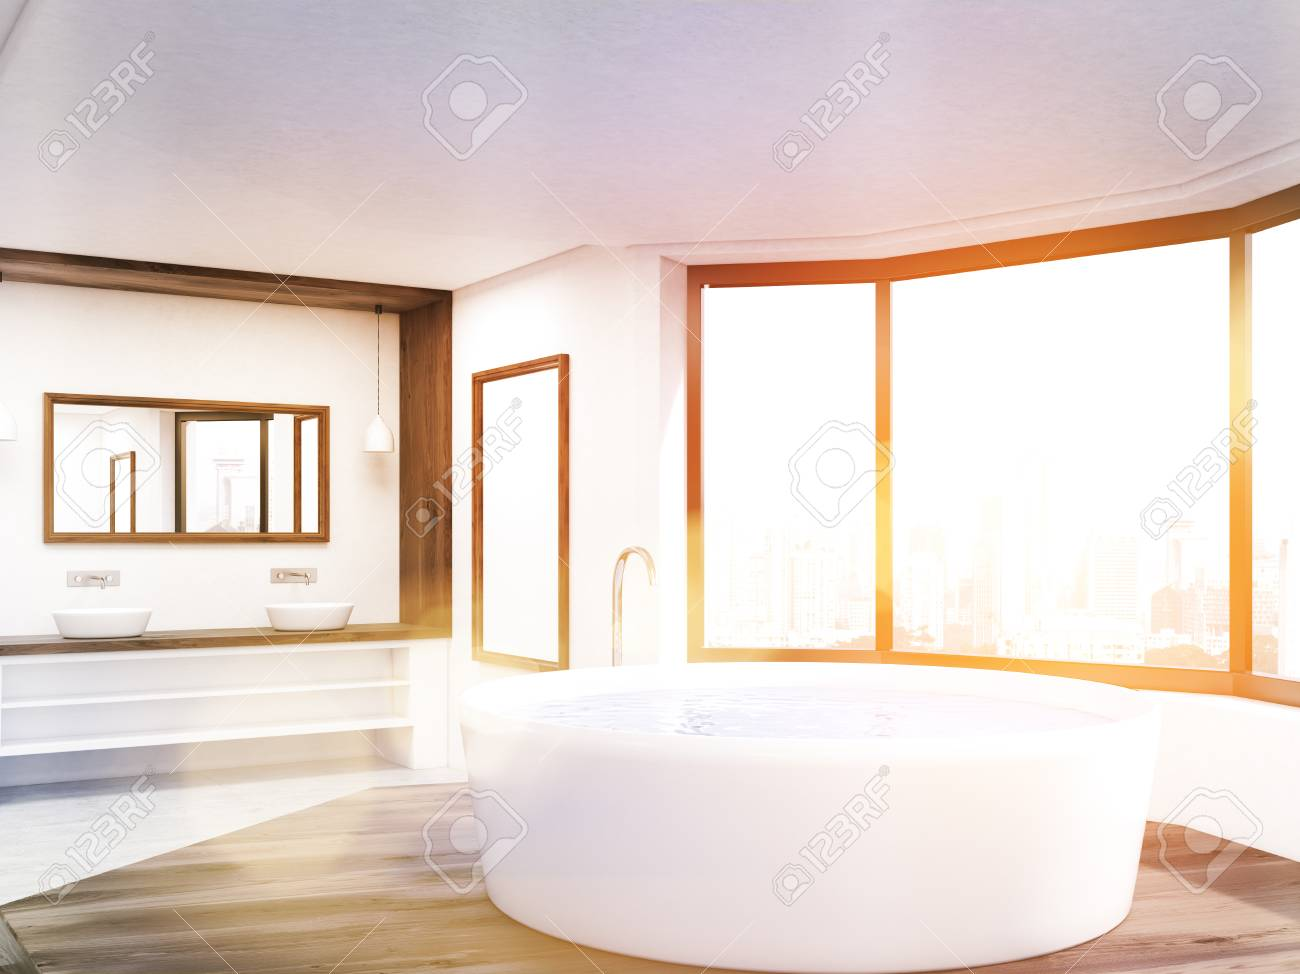 Sunlit Bathroom With Round Tub, Long Counter, Mirrors And Big Window.  Concept Of